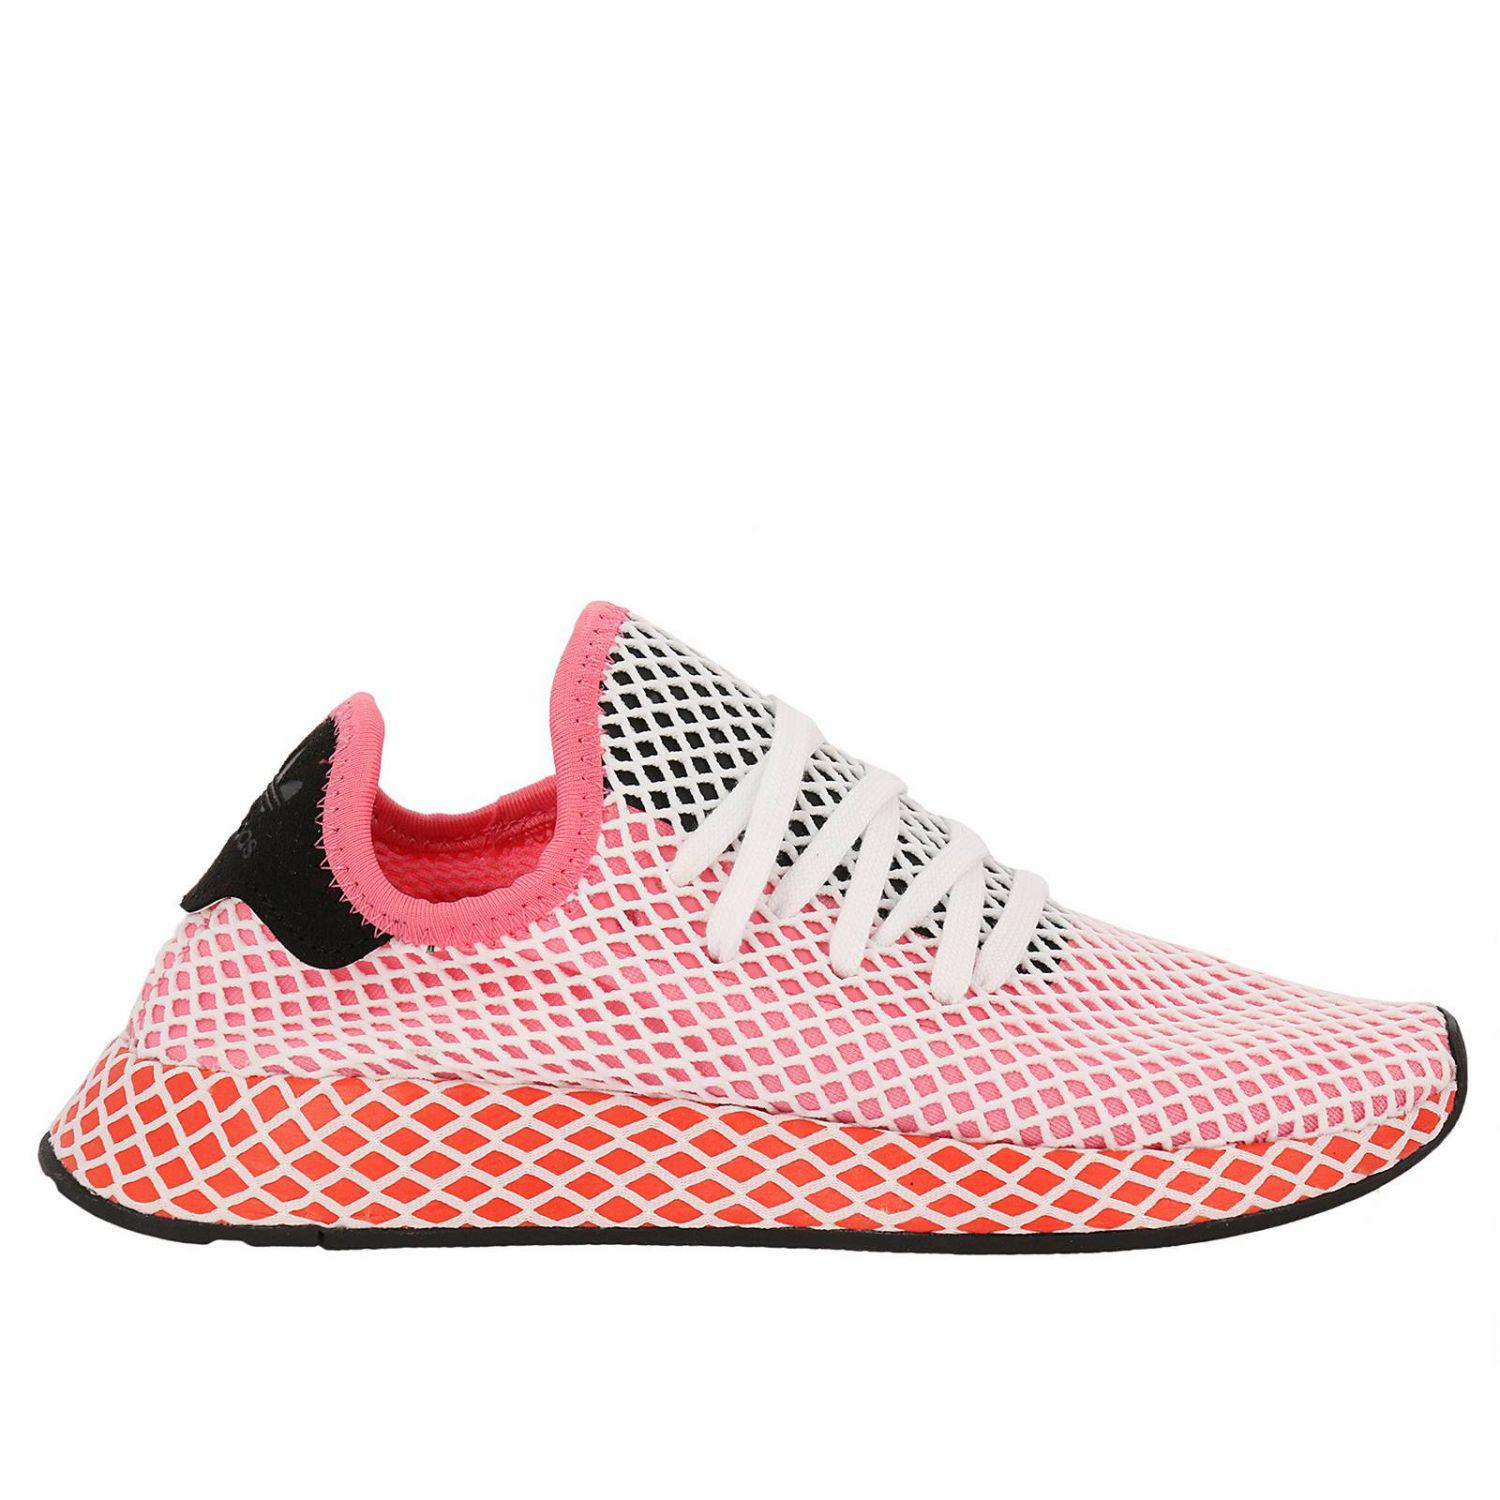 Adidas Originals Pink Adidas Deerupt Runner W Sneakers In Knit And Mesh Stretch Net Effect